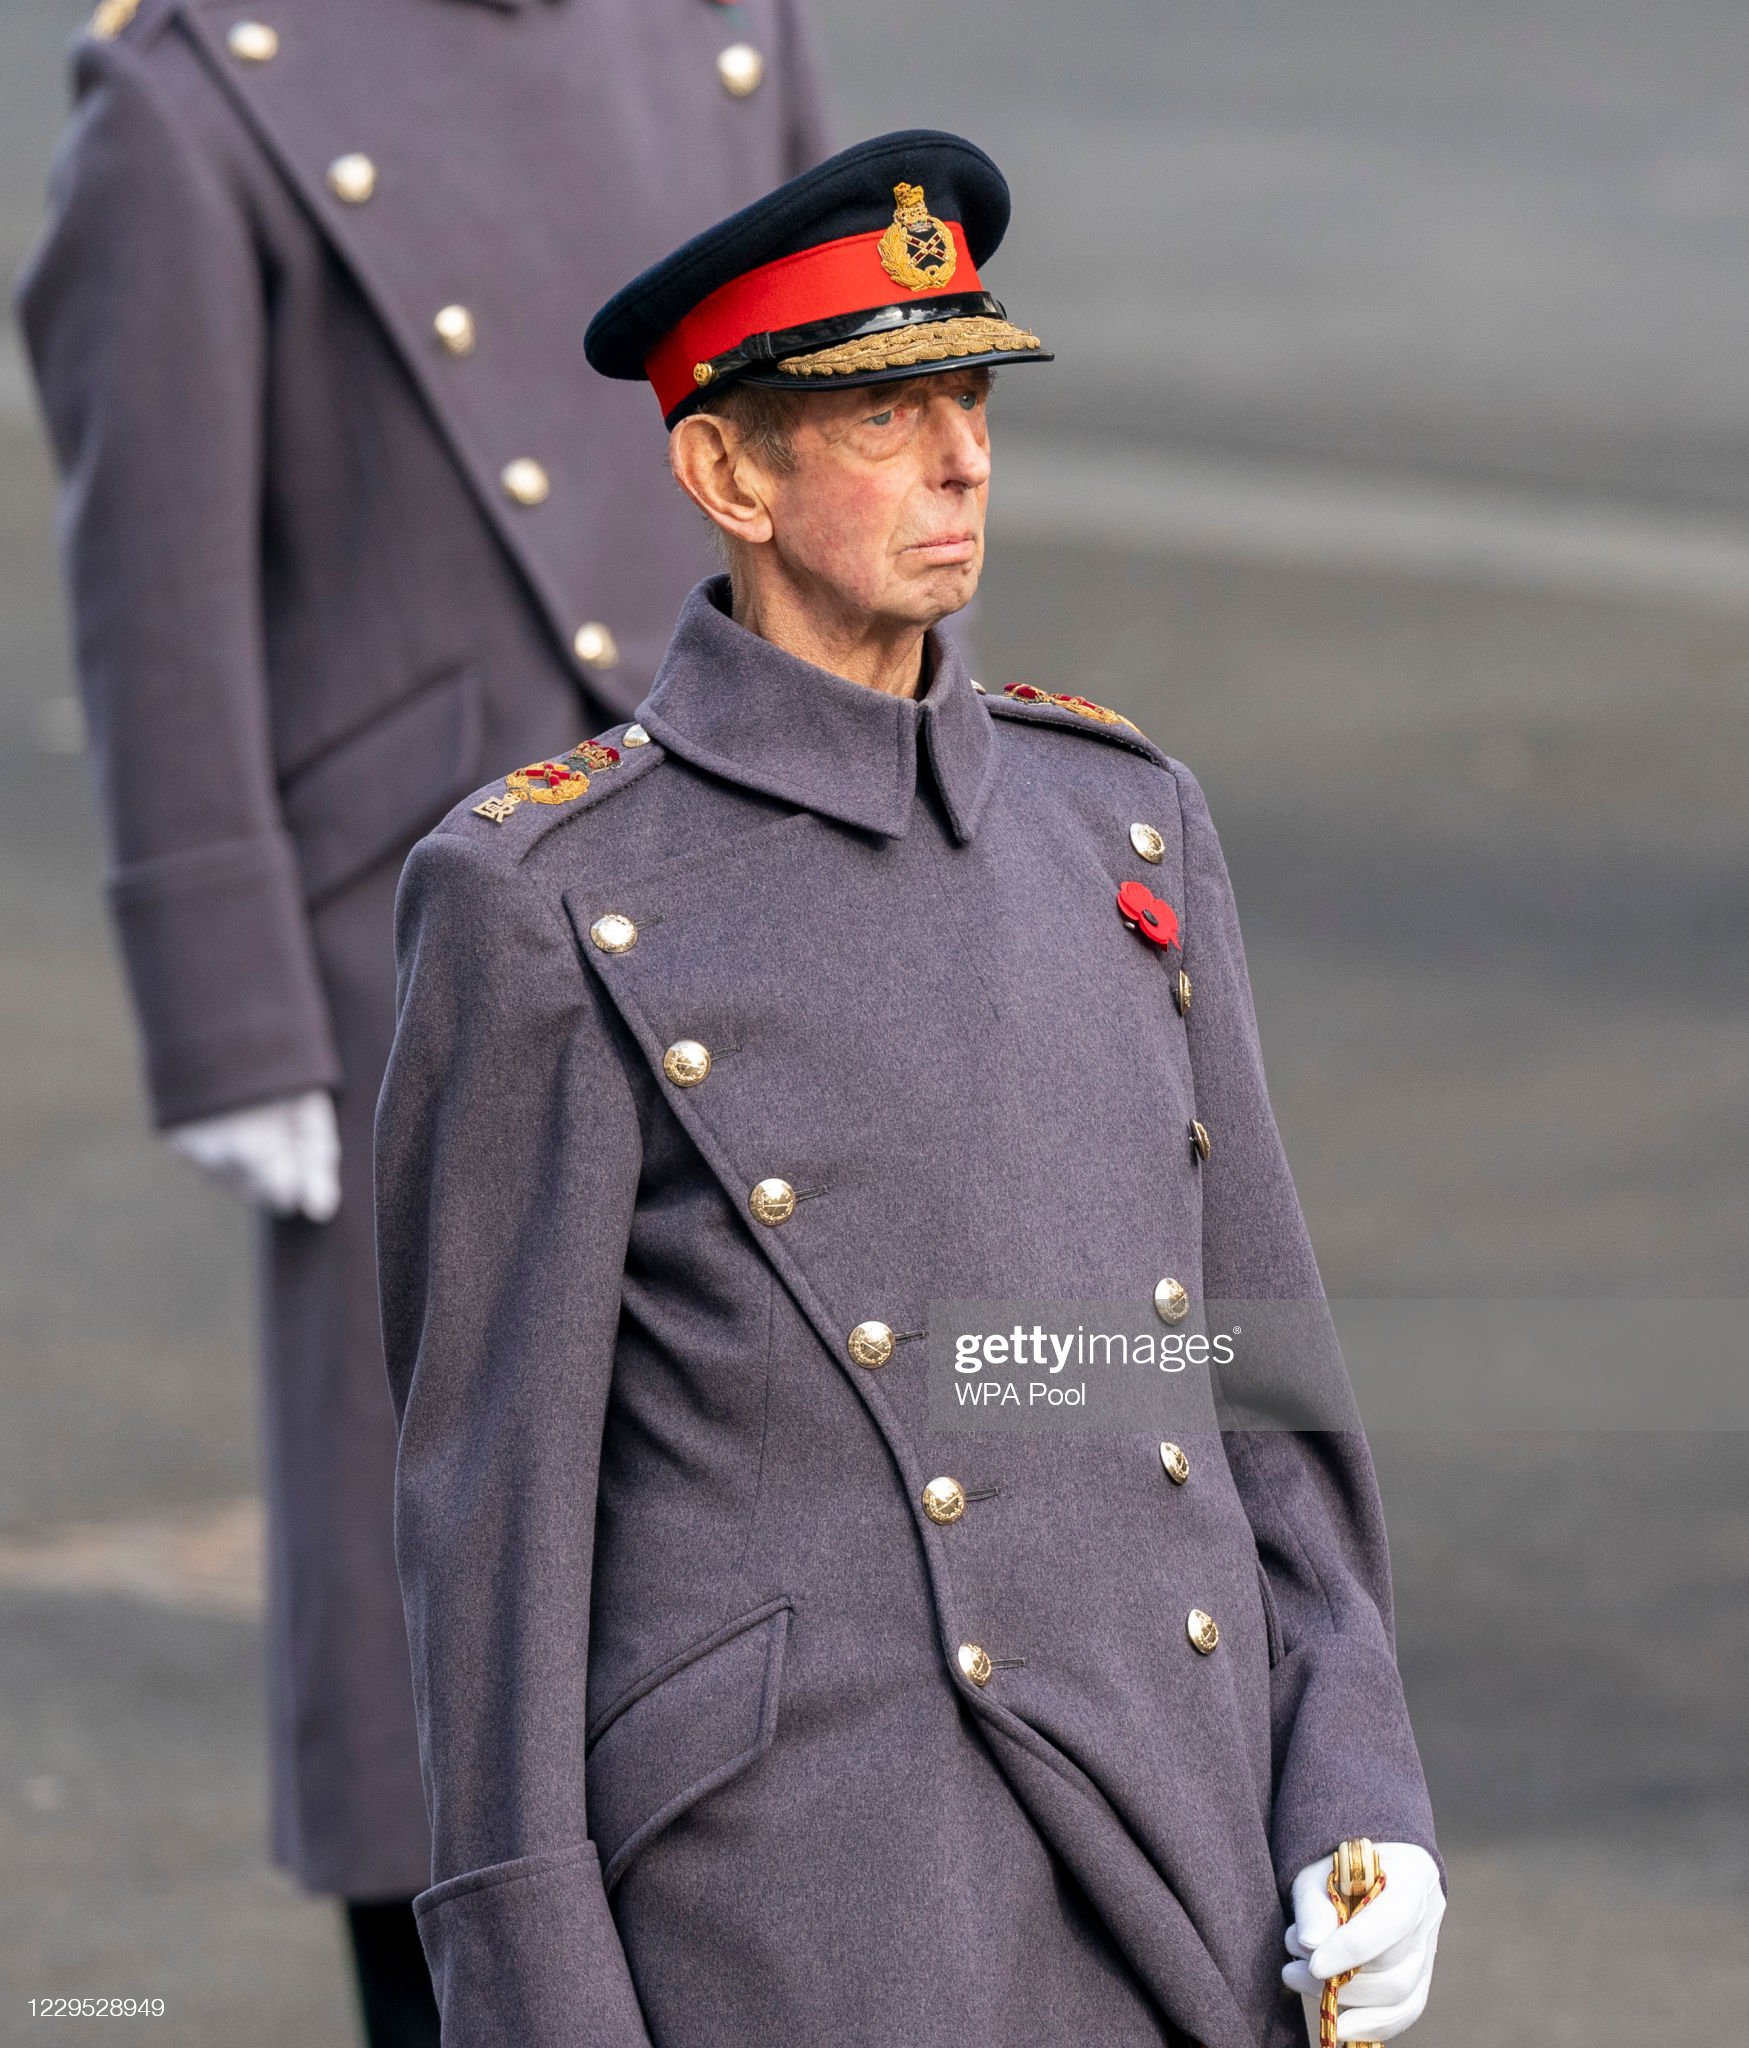 https://media.gettyimages.com/photos/prince-edward-duke-of-kent-attends-the-national-service-of-at-the-picture-id1229528949?s=2048x2048